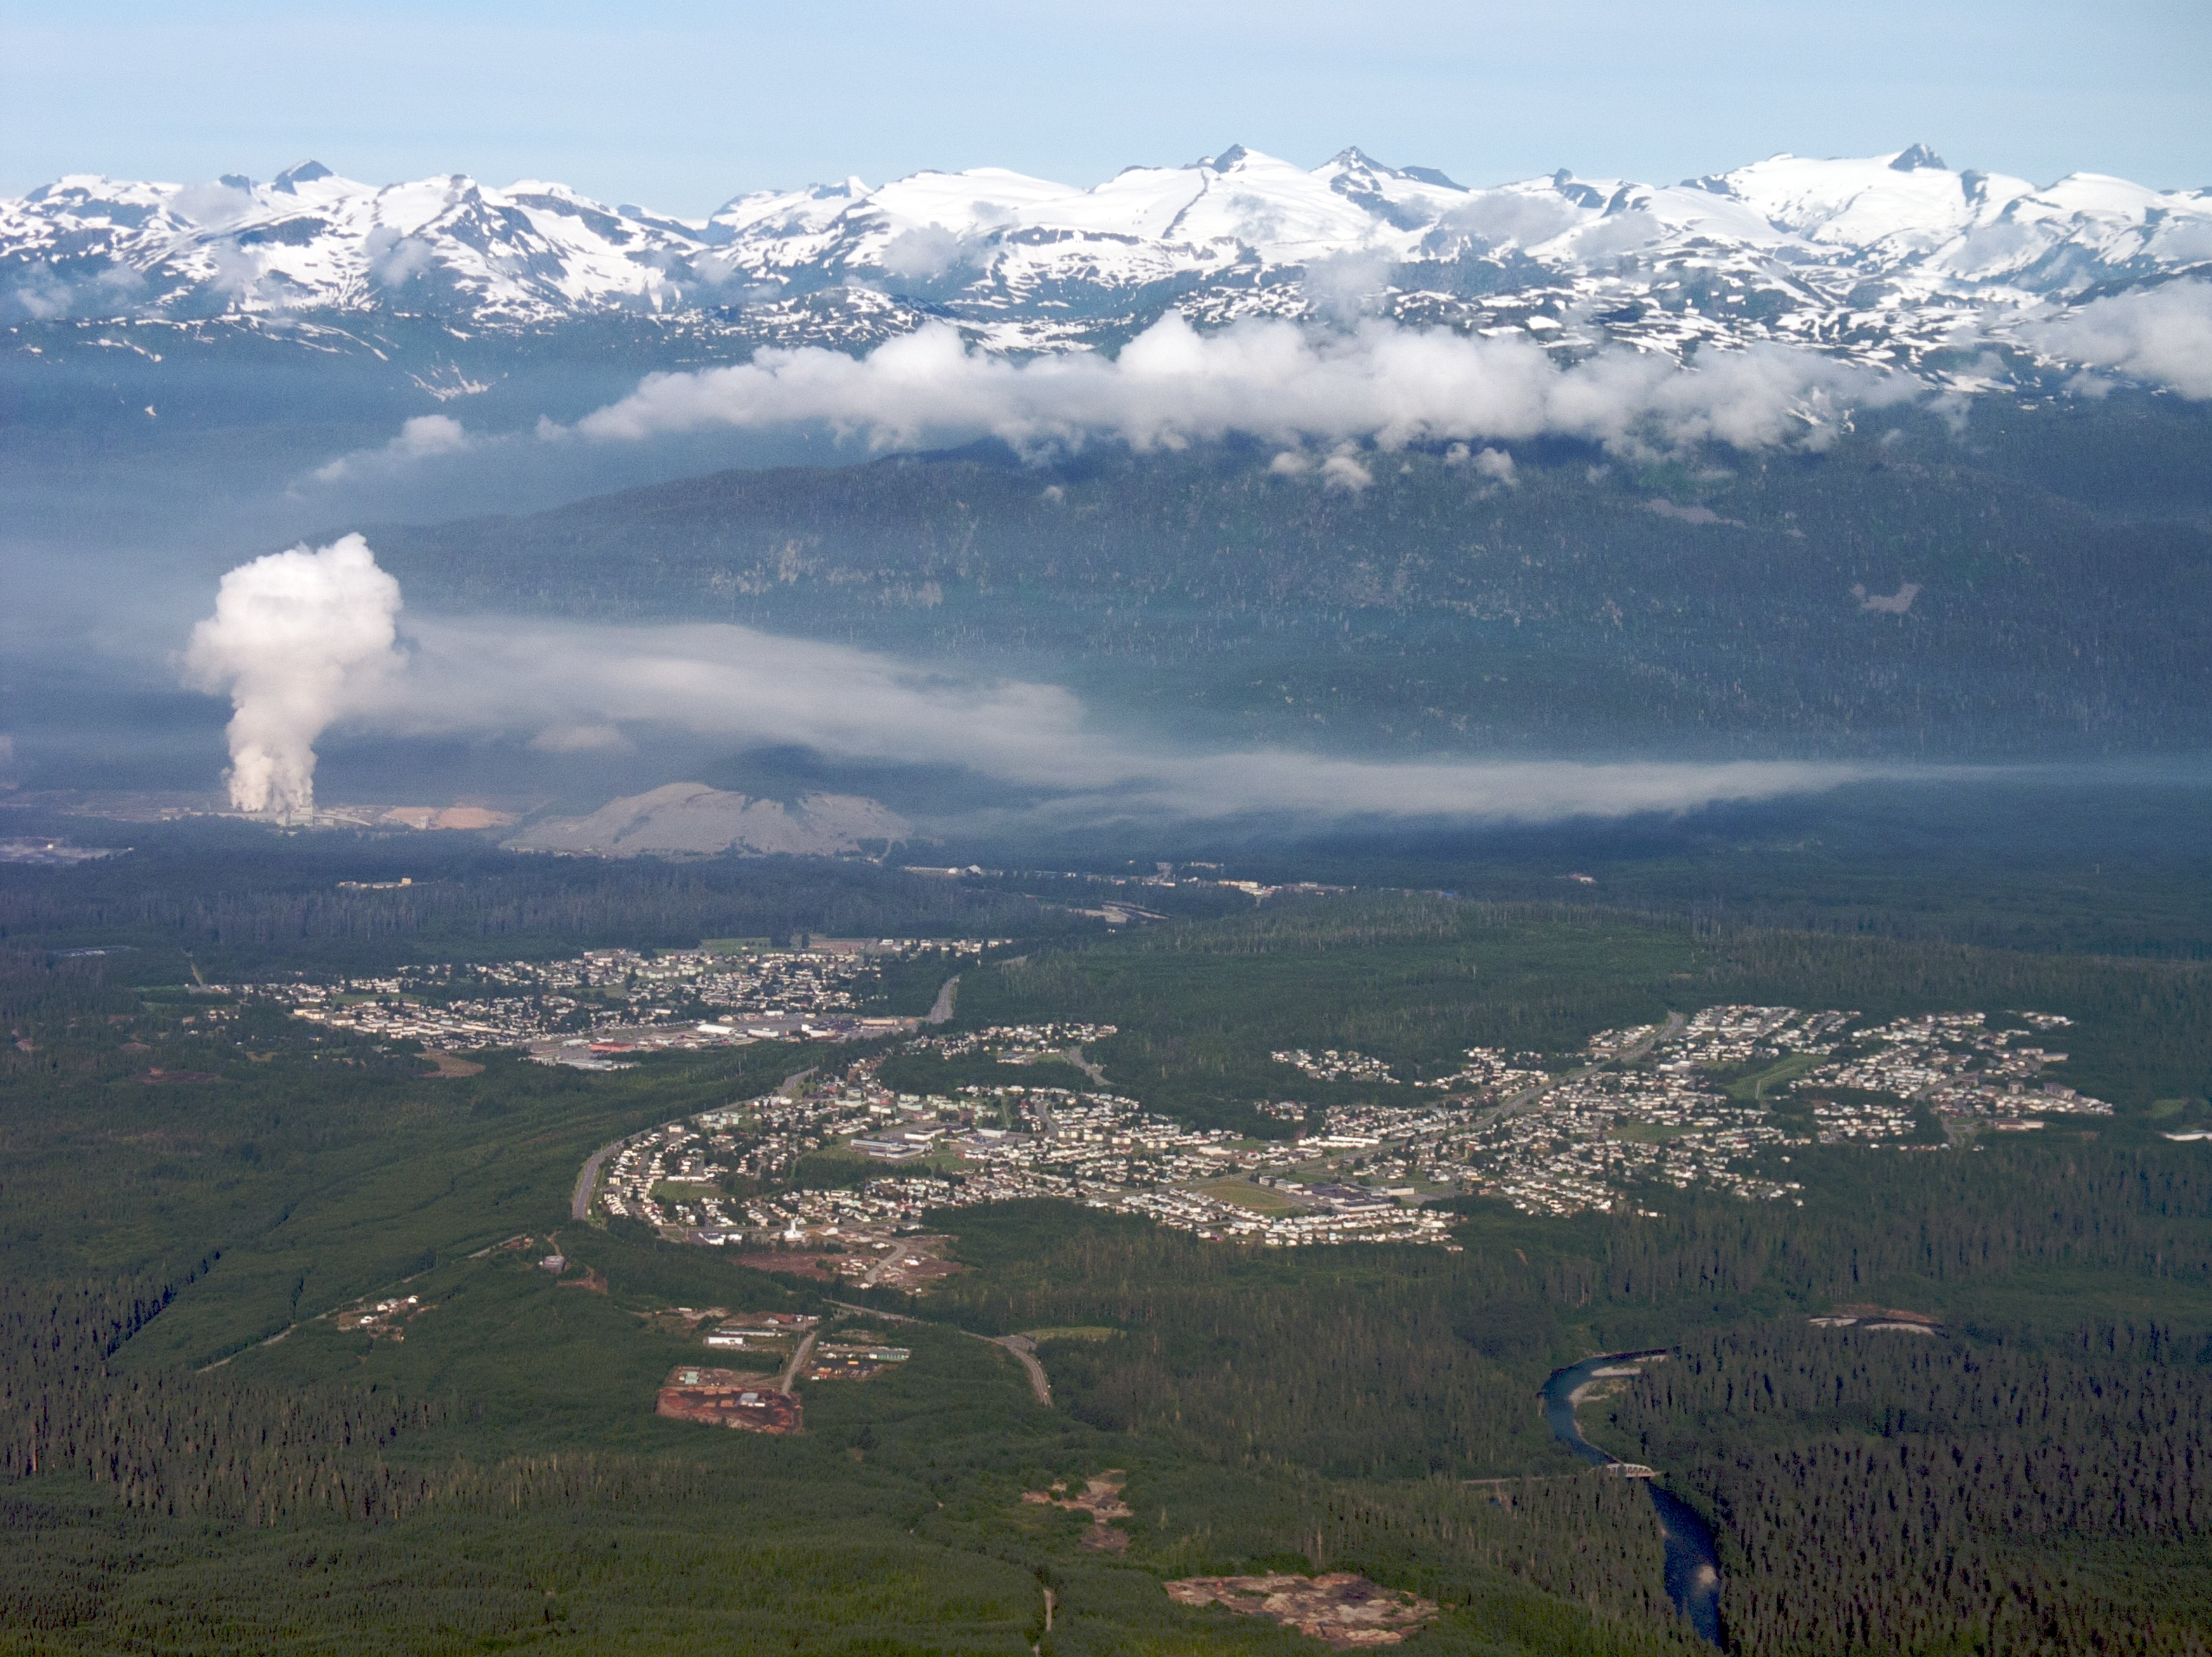 Aerial view of Kitimat By Sam Beebe (Kitimat) [CC-BY-2.0 (http://creativecommons.org/licenses/by/2.0)], via Wikimedia Commons